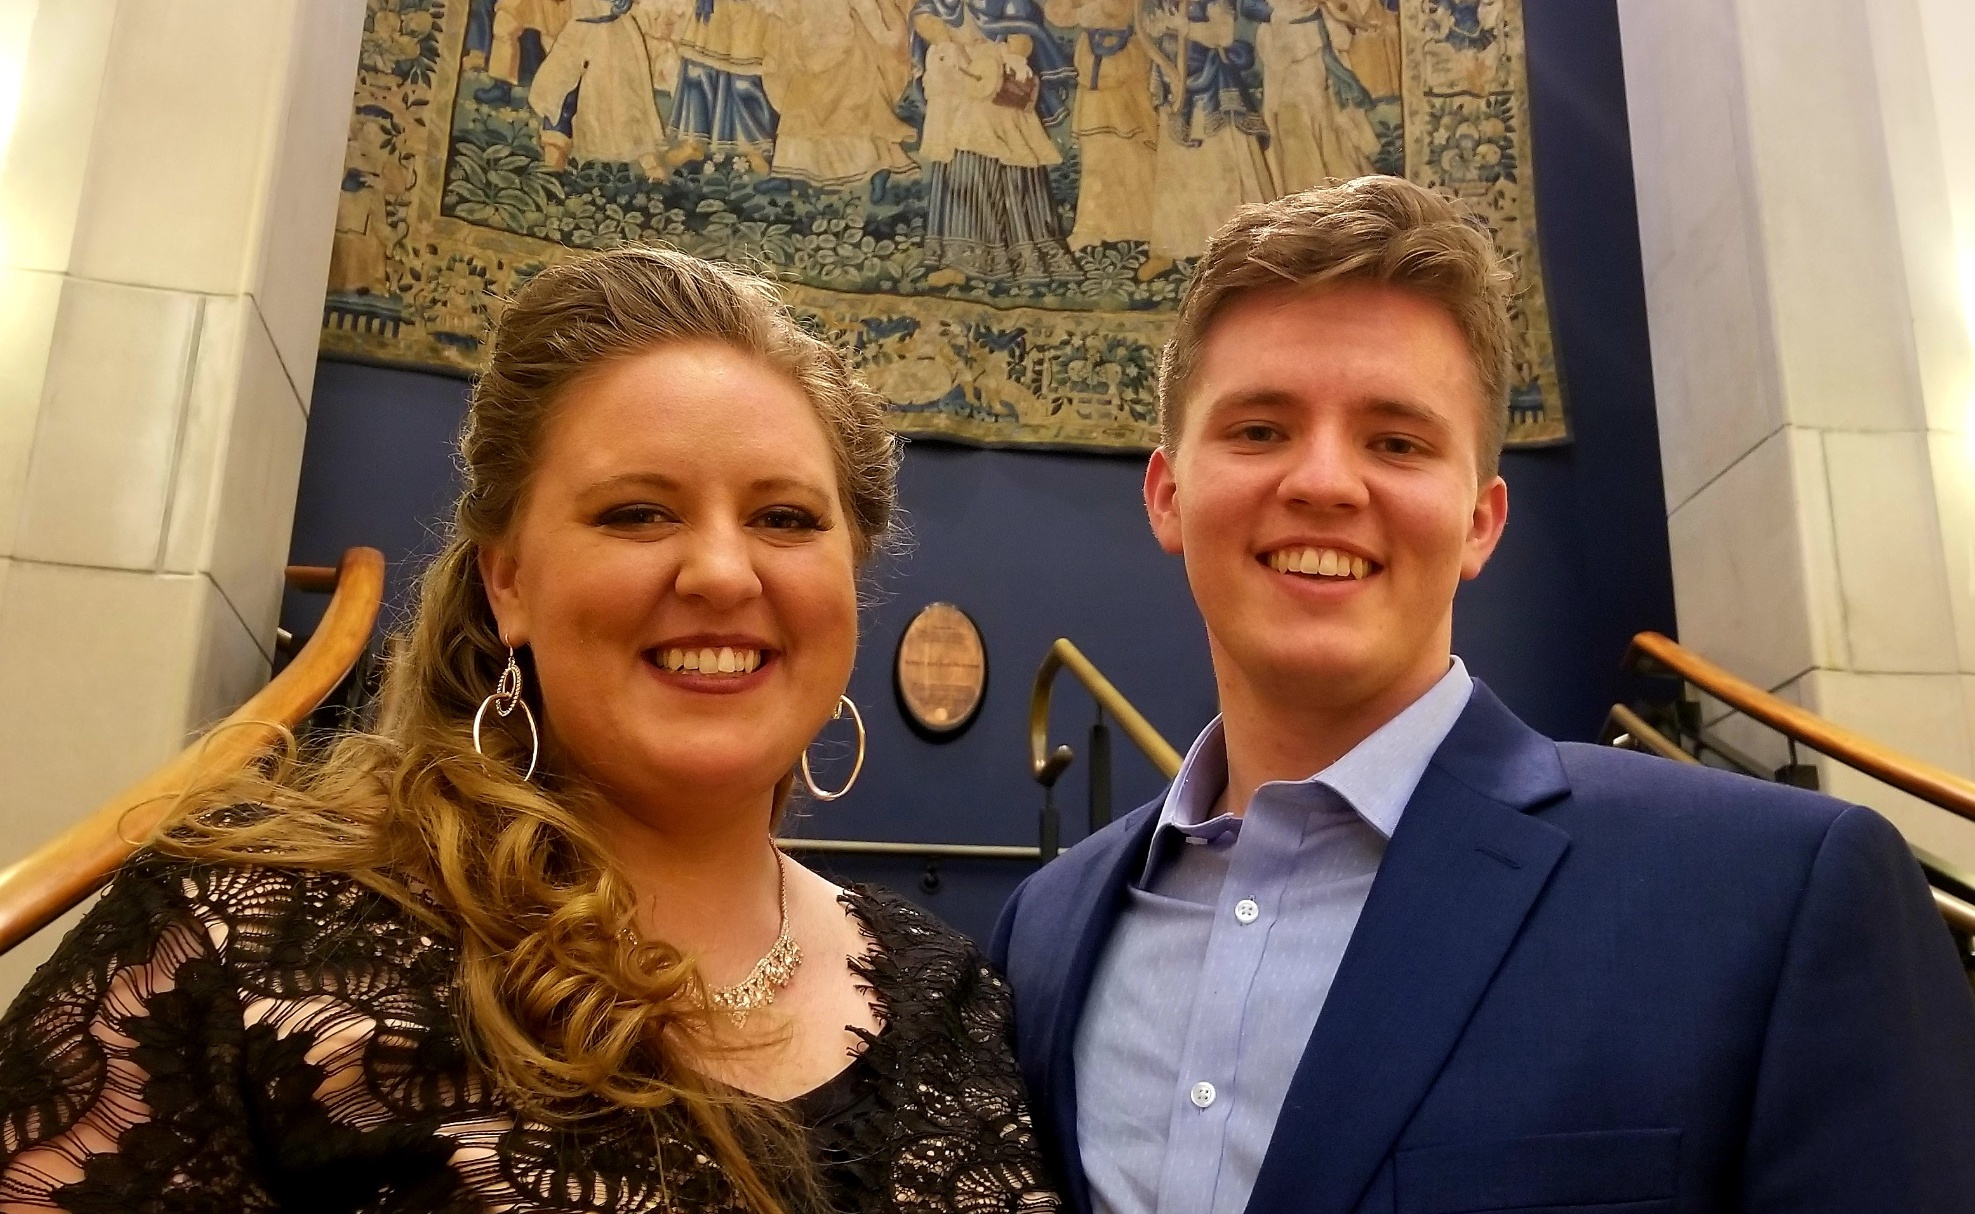 Siblings Mary and Jonah Hoskins are both pursuing professional opera careers following full-time missionary service.